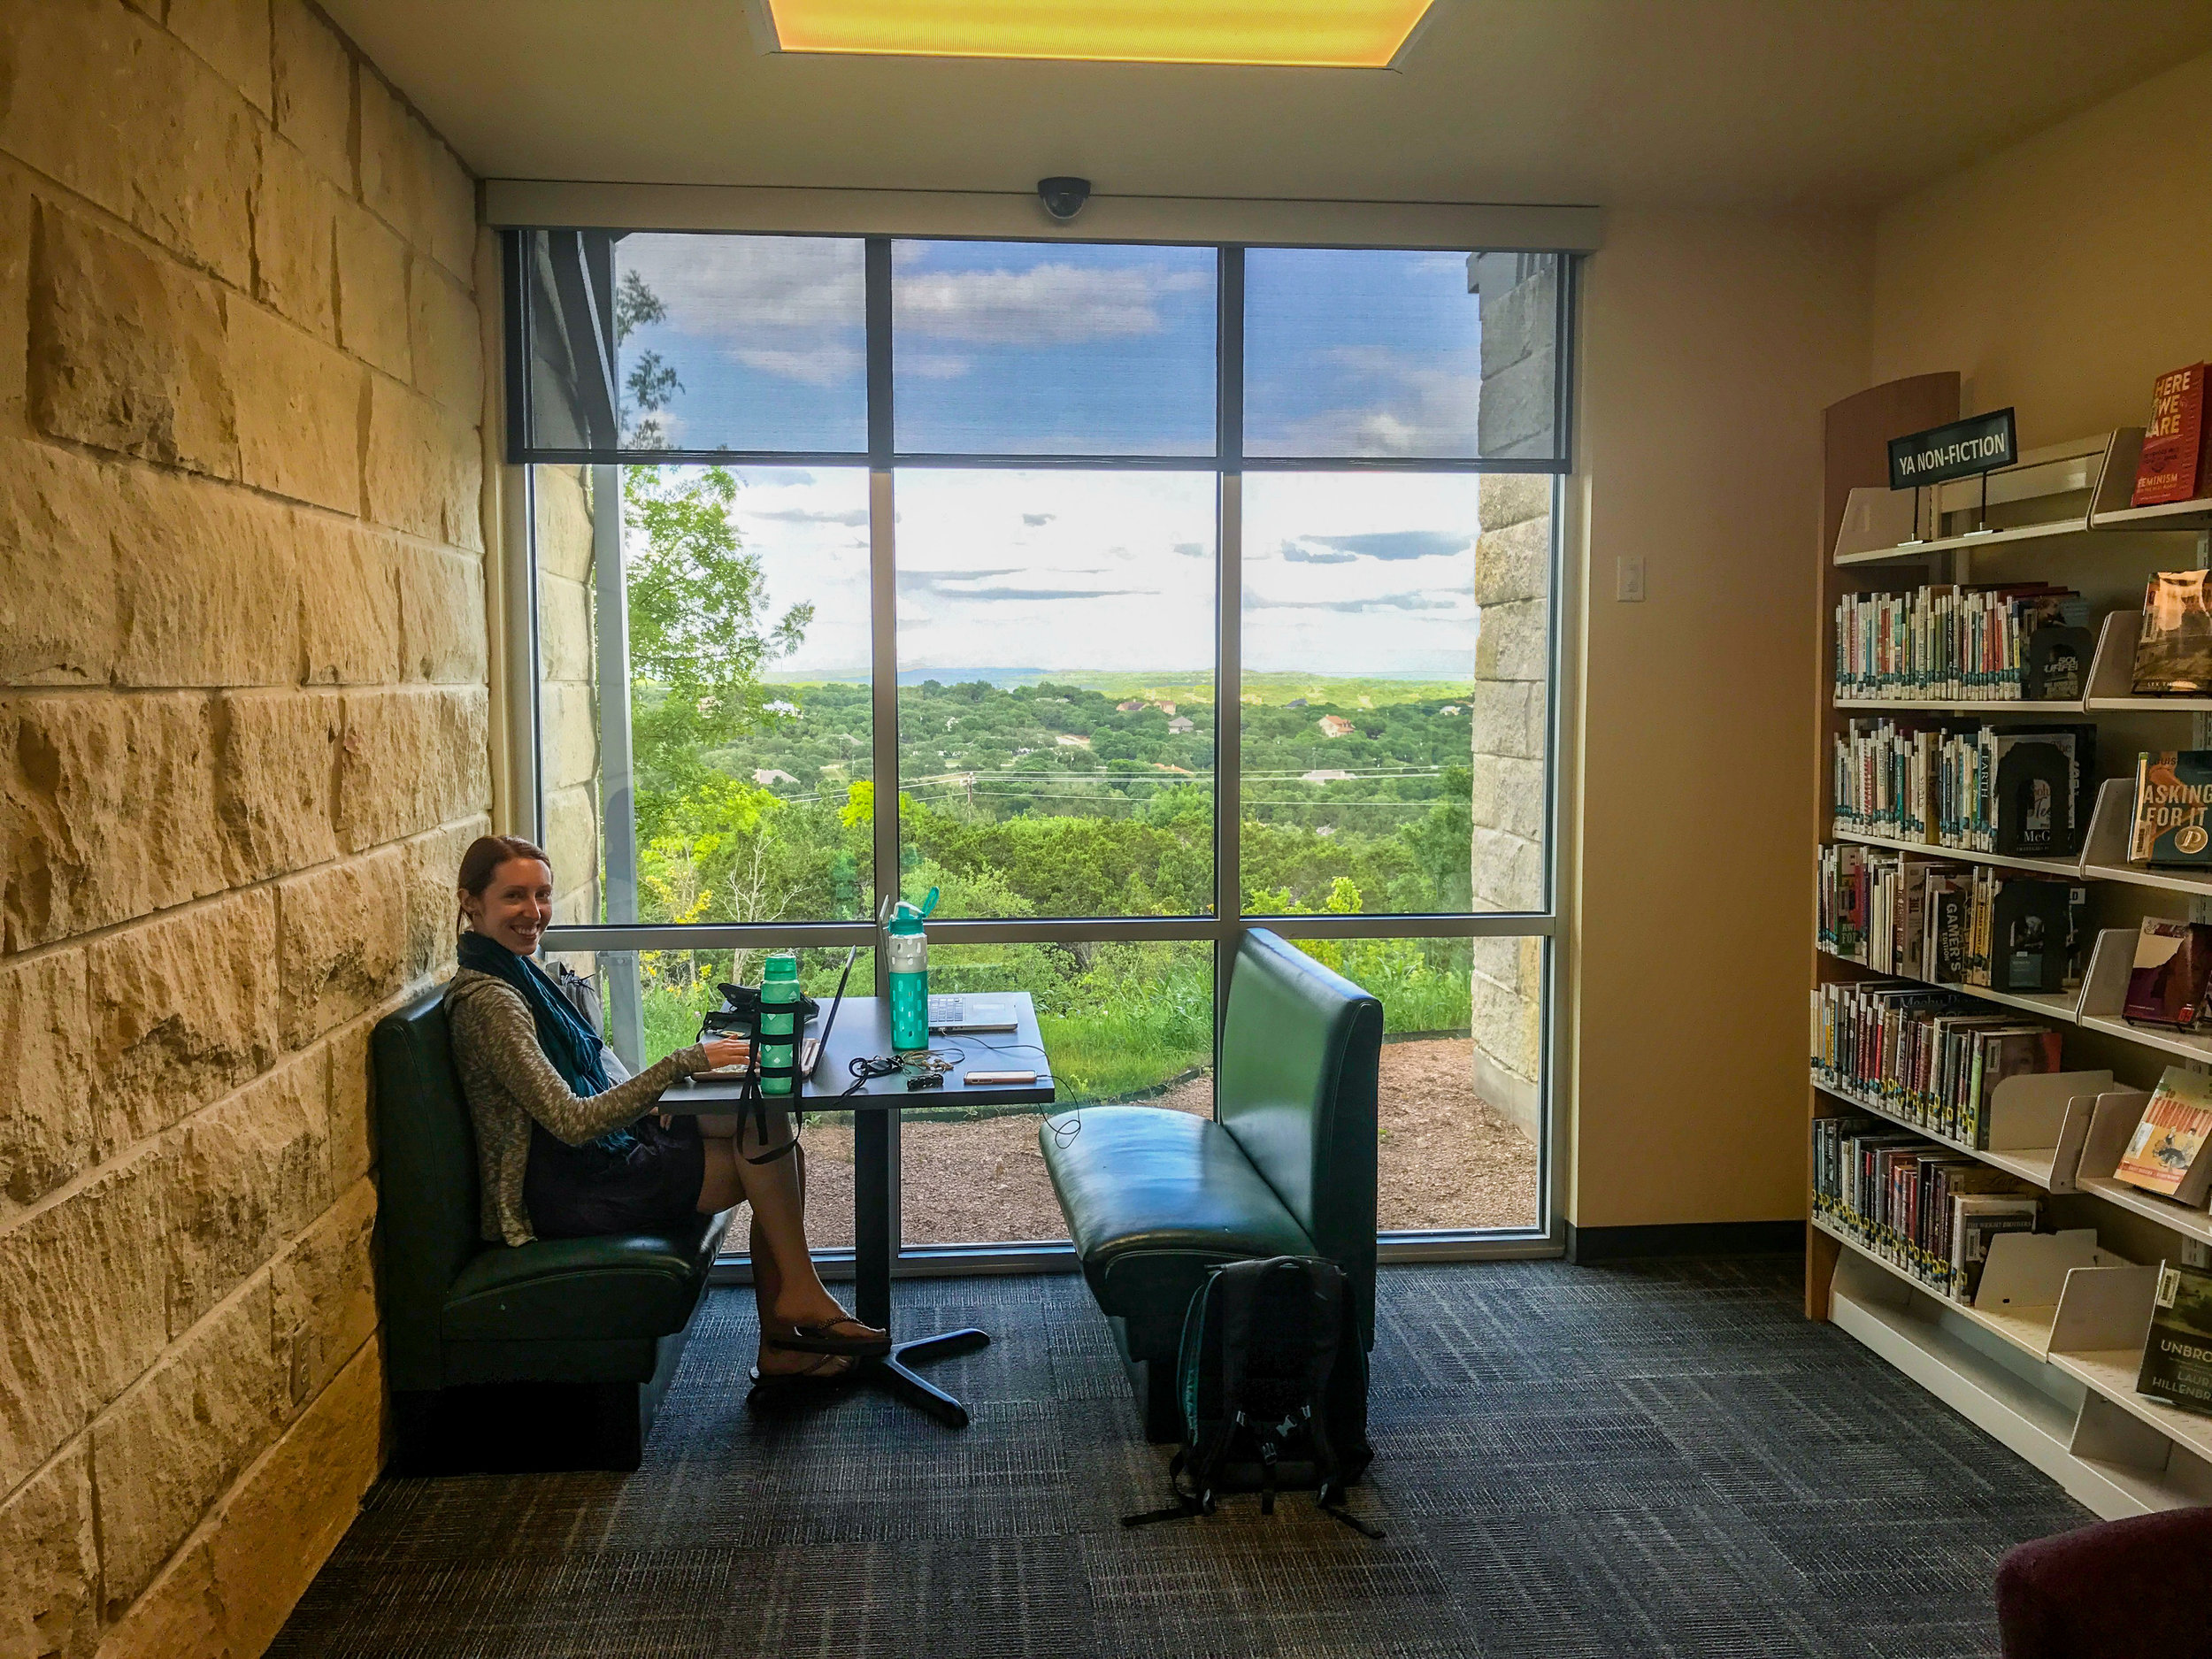 Texas library with an amazing view!